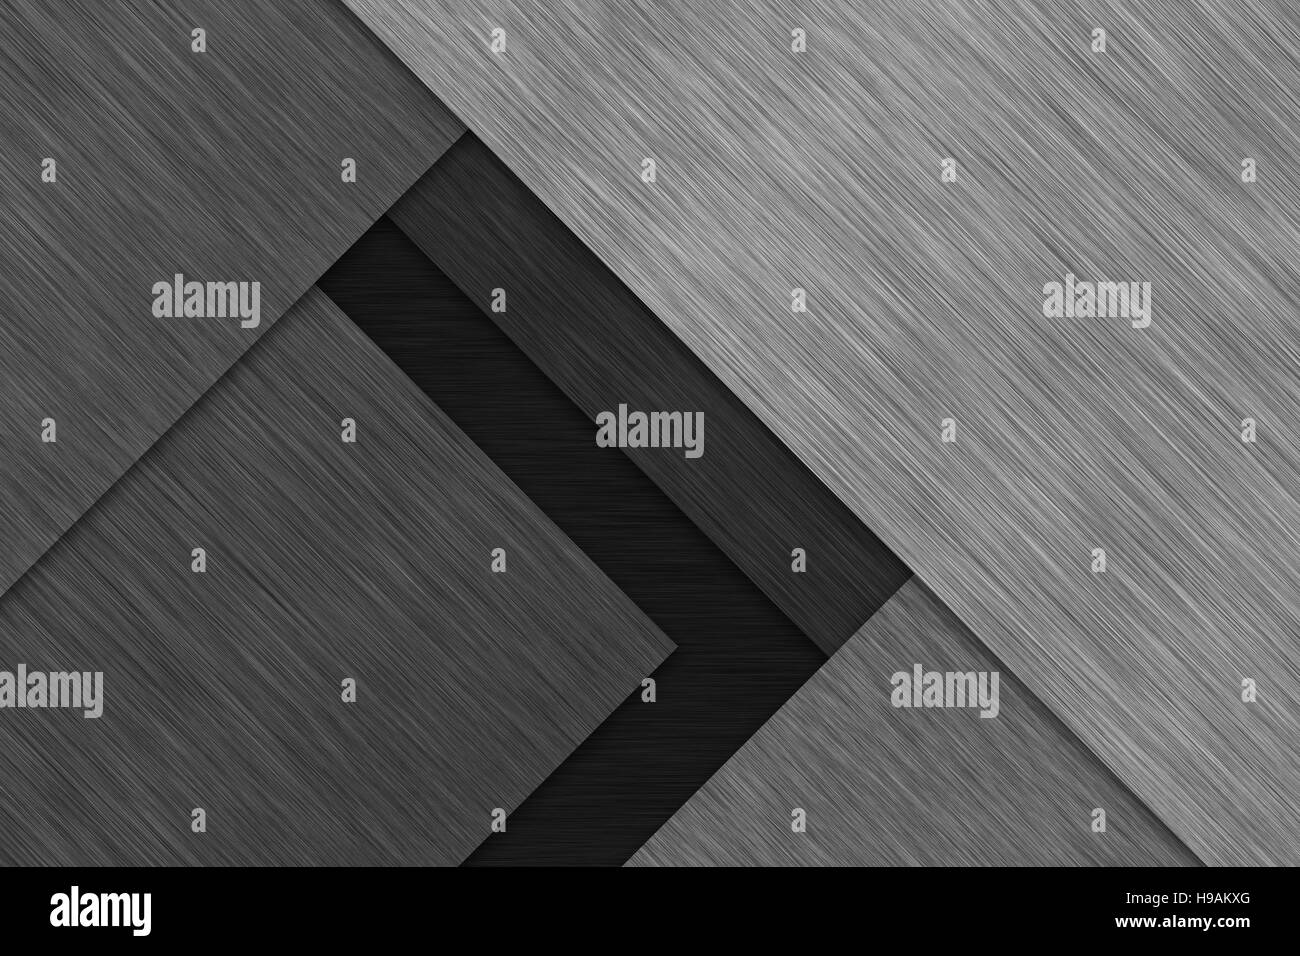 Linear brushed metal texture layered plates. Aluminum background wallpaper - Stock Image